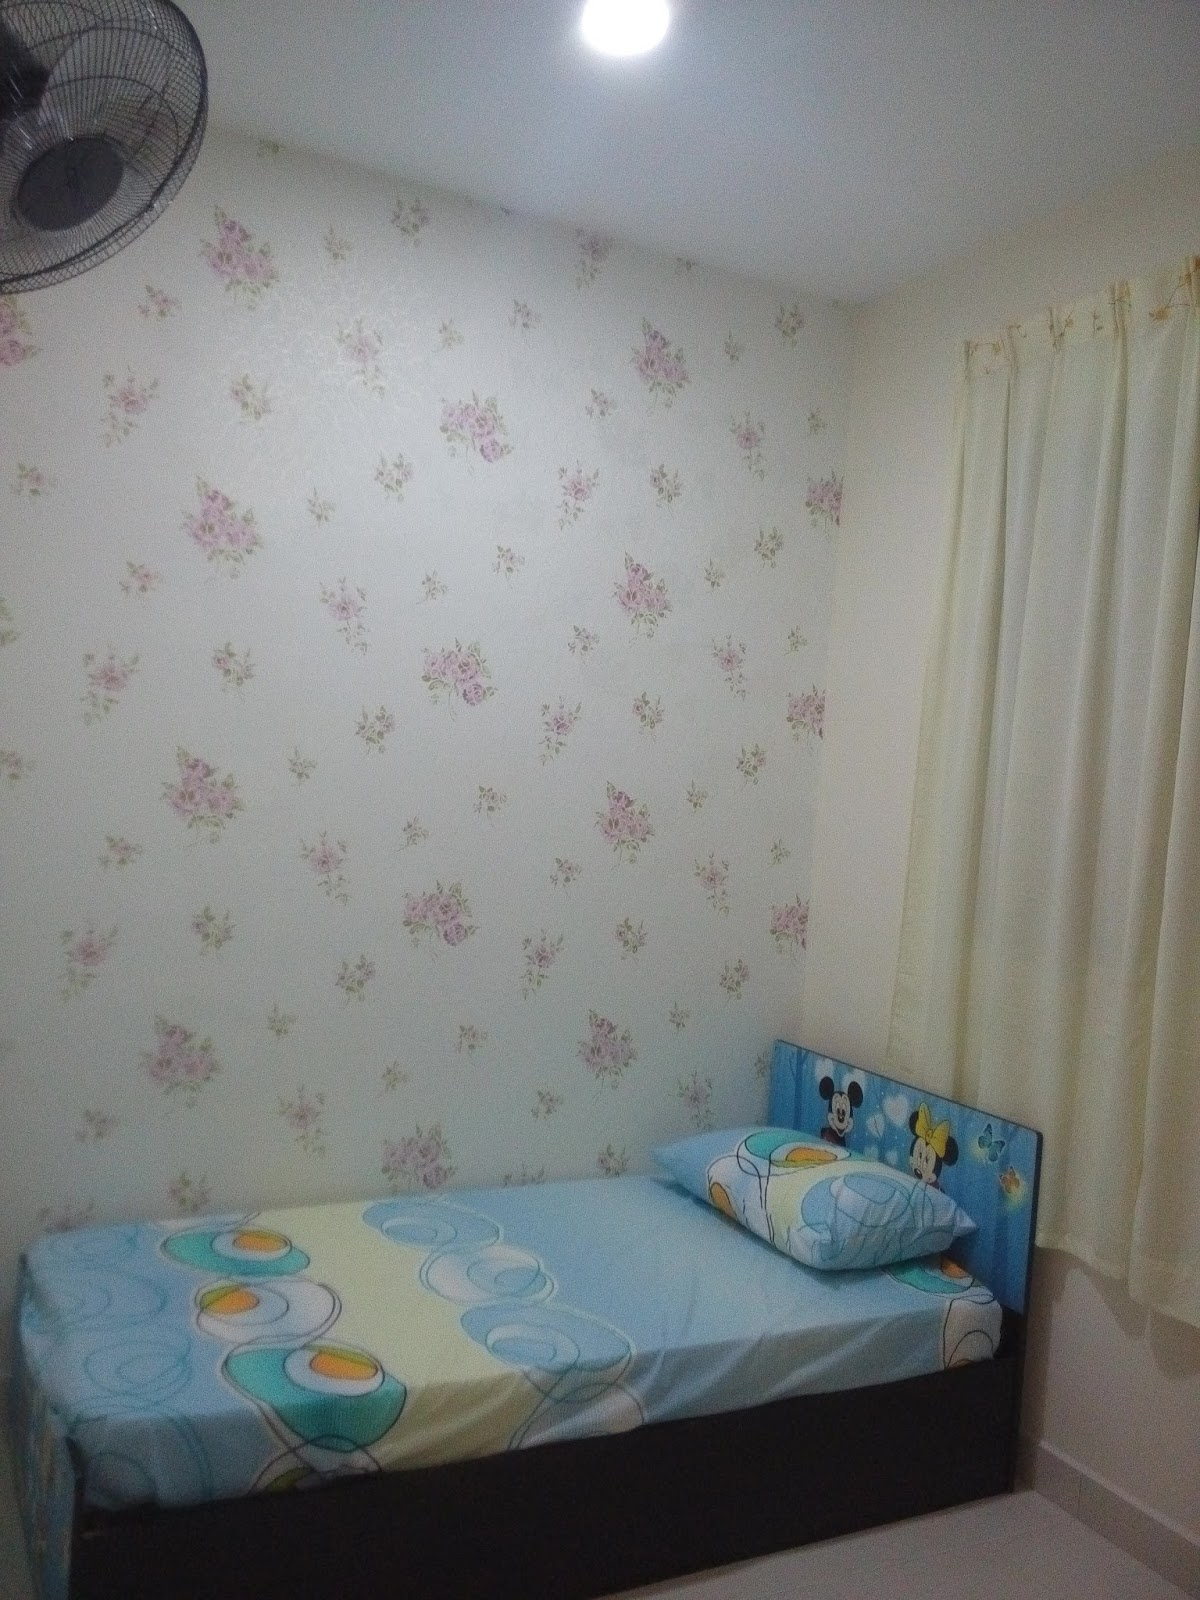 bayan lepas singles Th hotel penang, bayan lepas one of our bestsellers in bayan lepas the rooms are fully air conditioned and well equipped with 2 single beds.